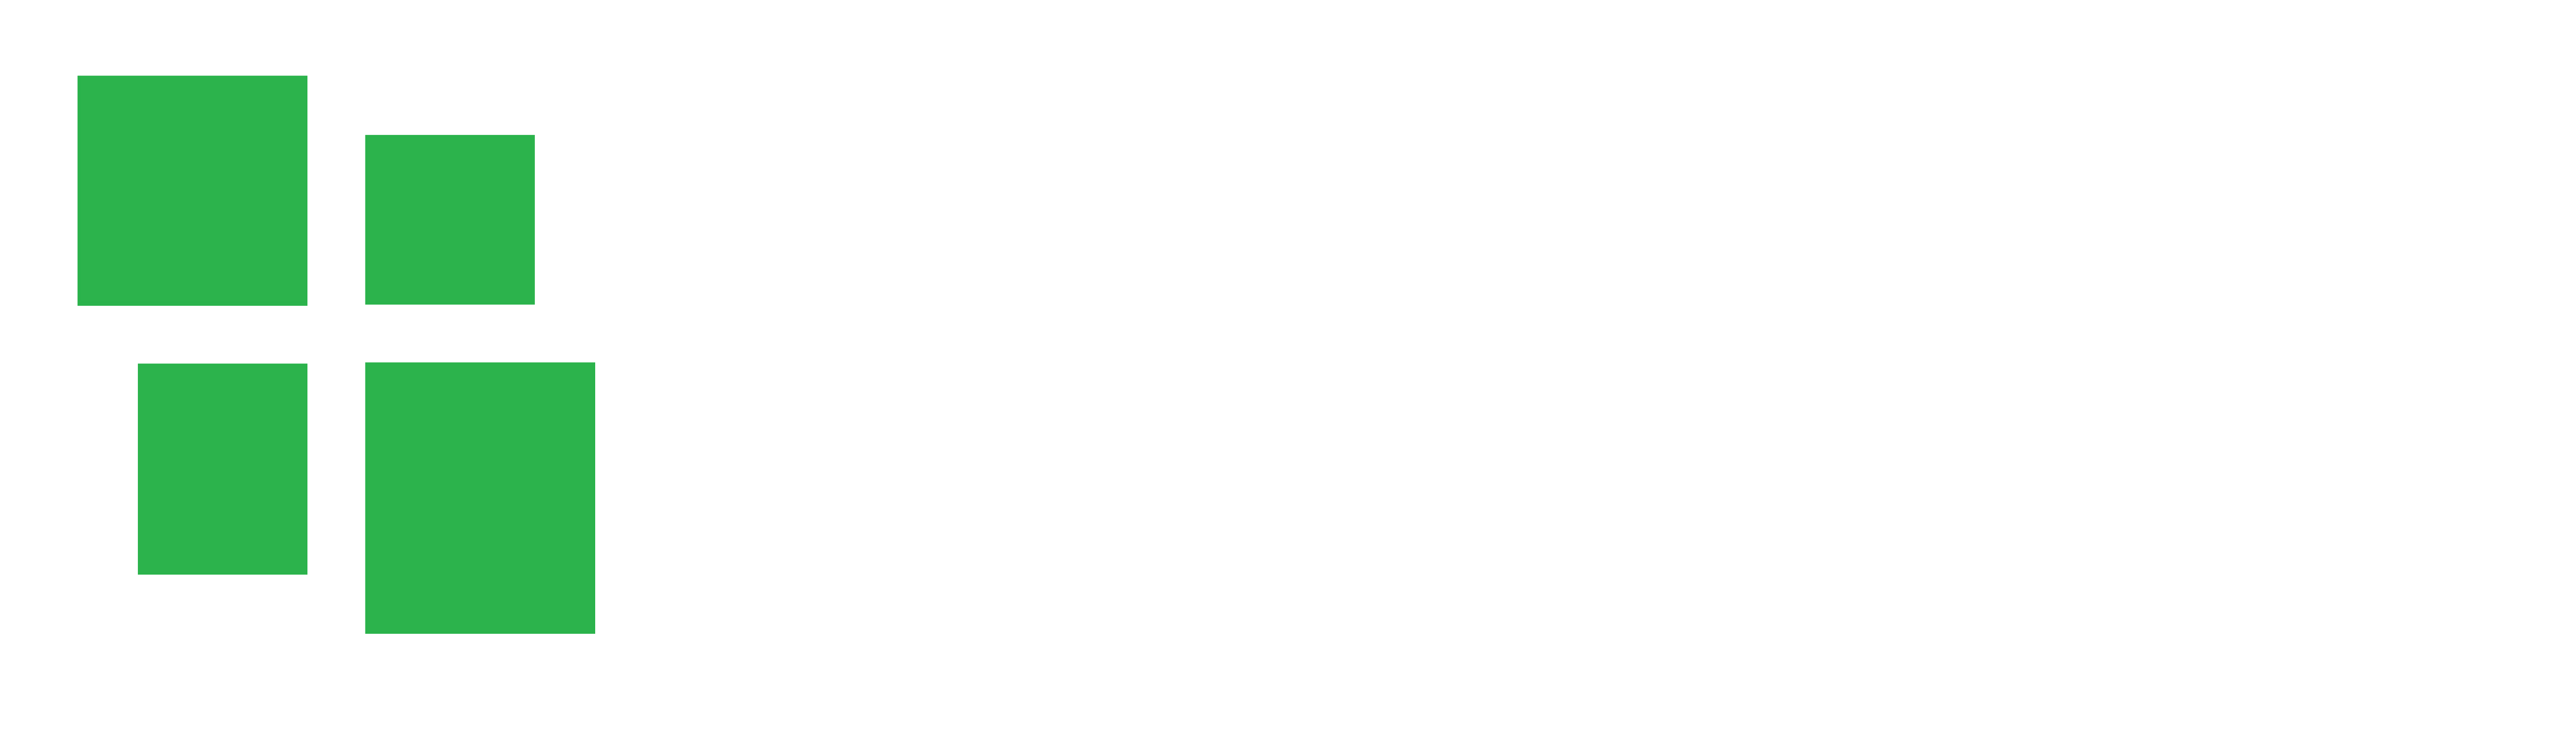 Providence Logo - Providence Recovery | Addiction Services & Interventions